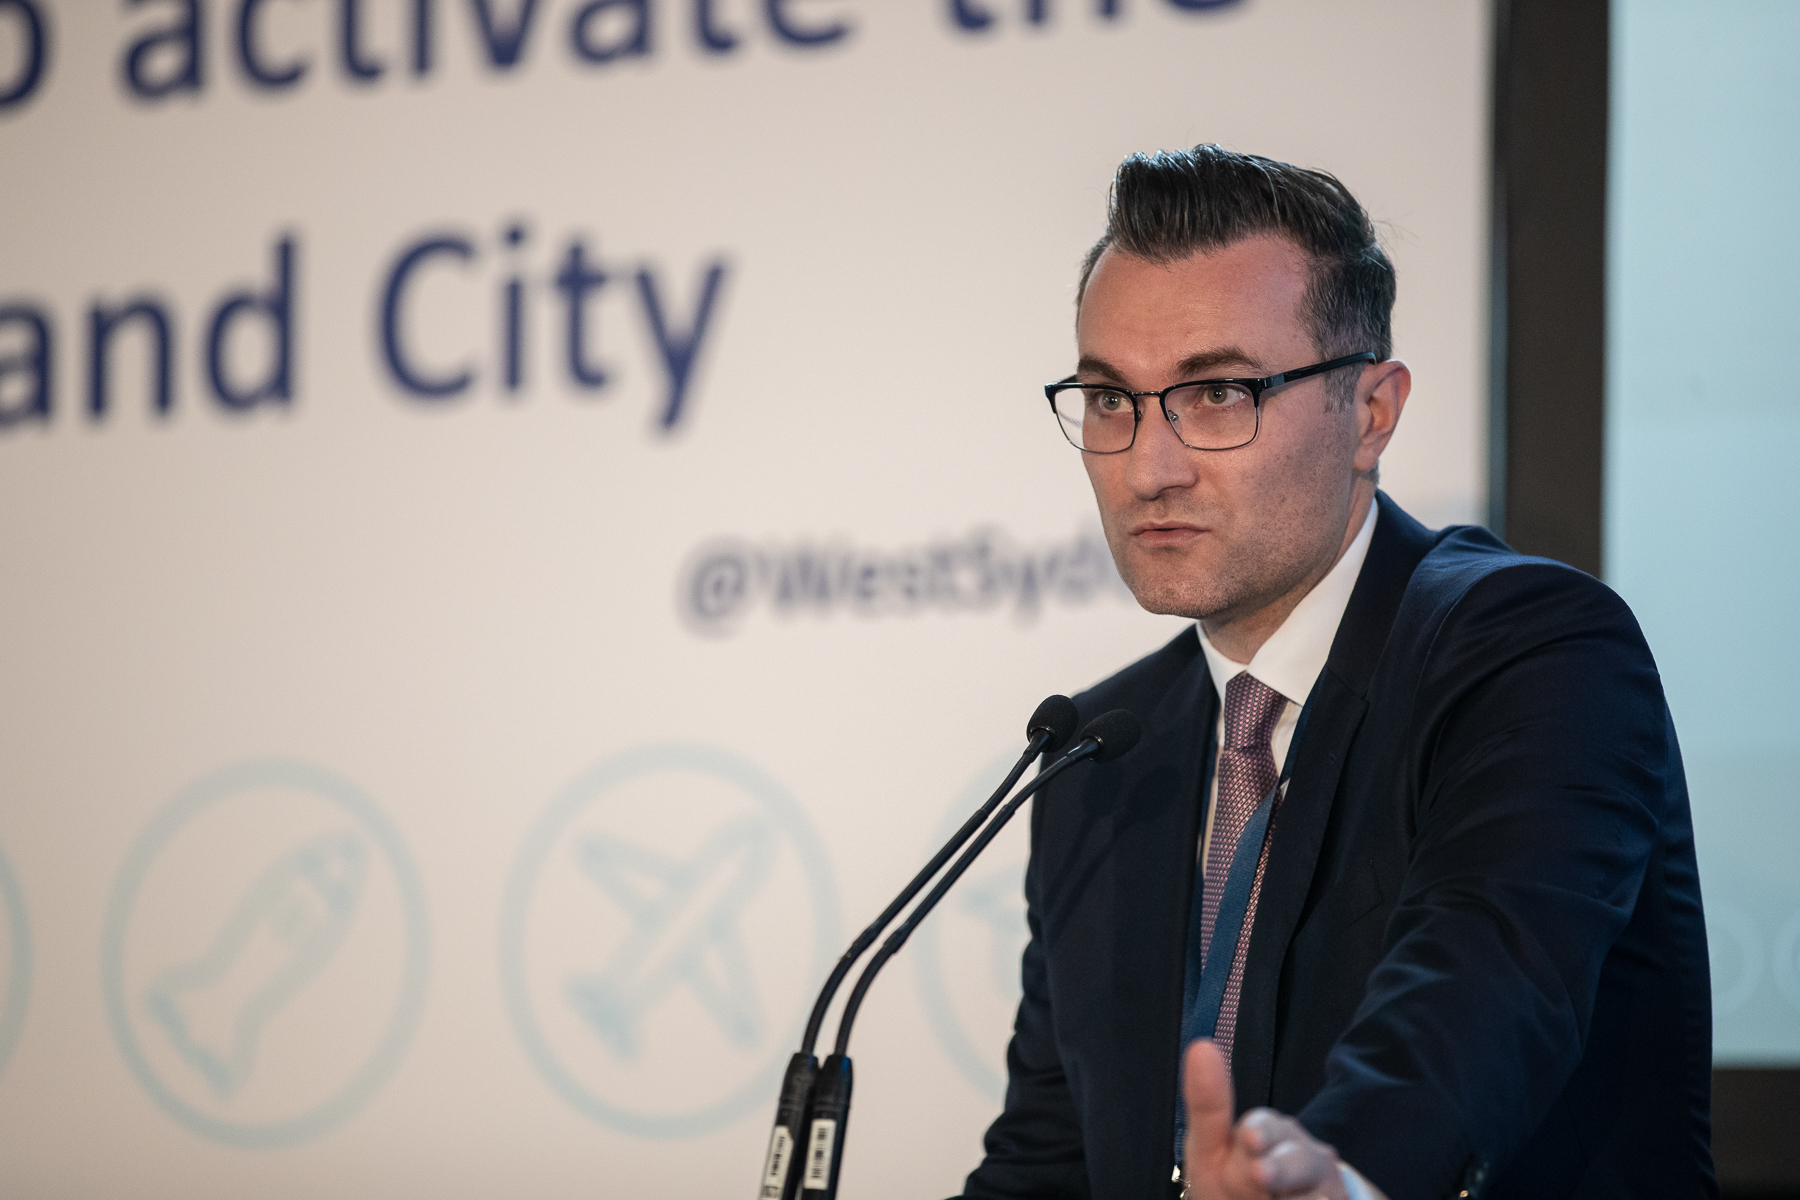 Vitex Pharmaceuticals' CEO, Dr Aniss Chami joined the Western City & Aerotropolis Authority Industry Symposium that took place on Monday 16 December 2019 at Warwick Farm.